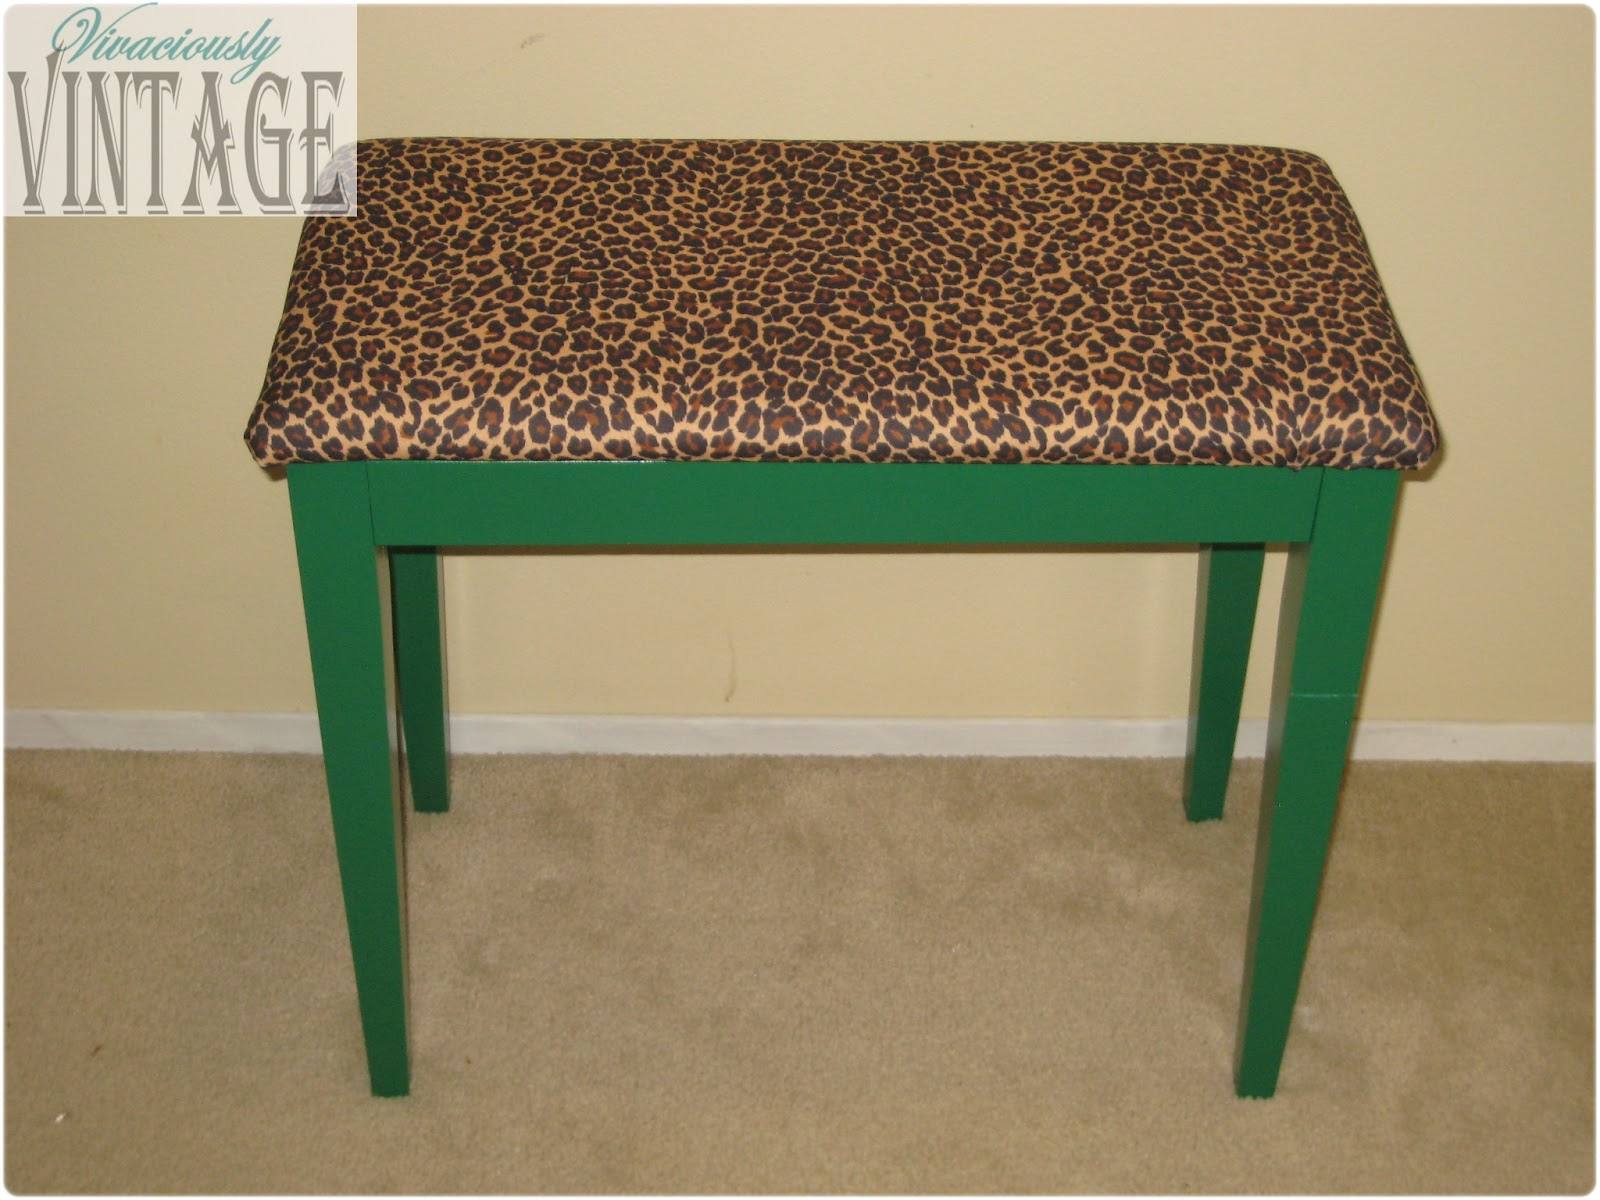 Ansley Designs Emerald Green Leopard Piano Bench